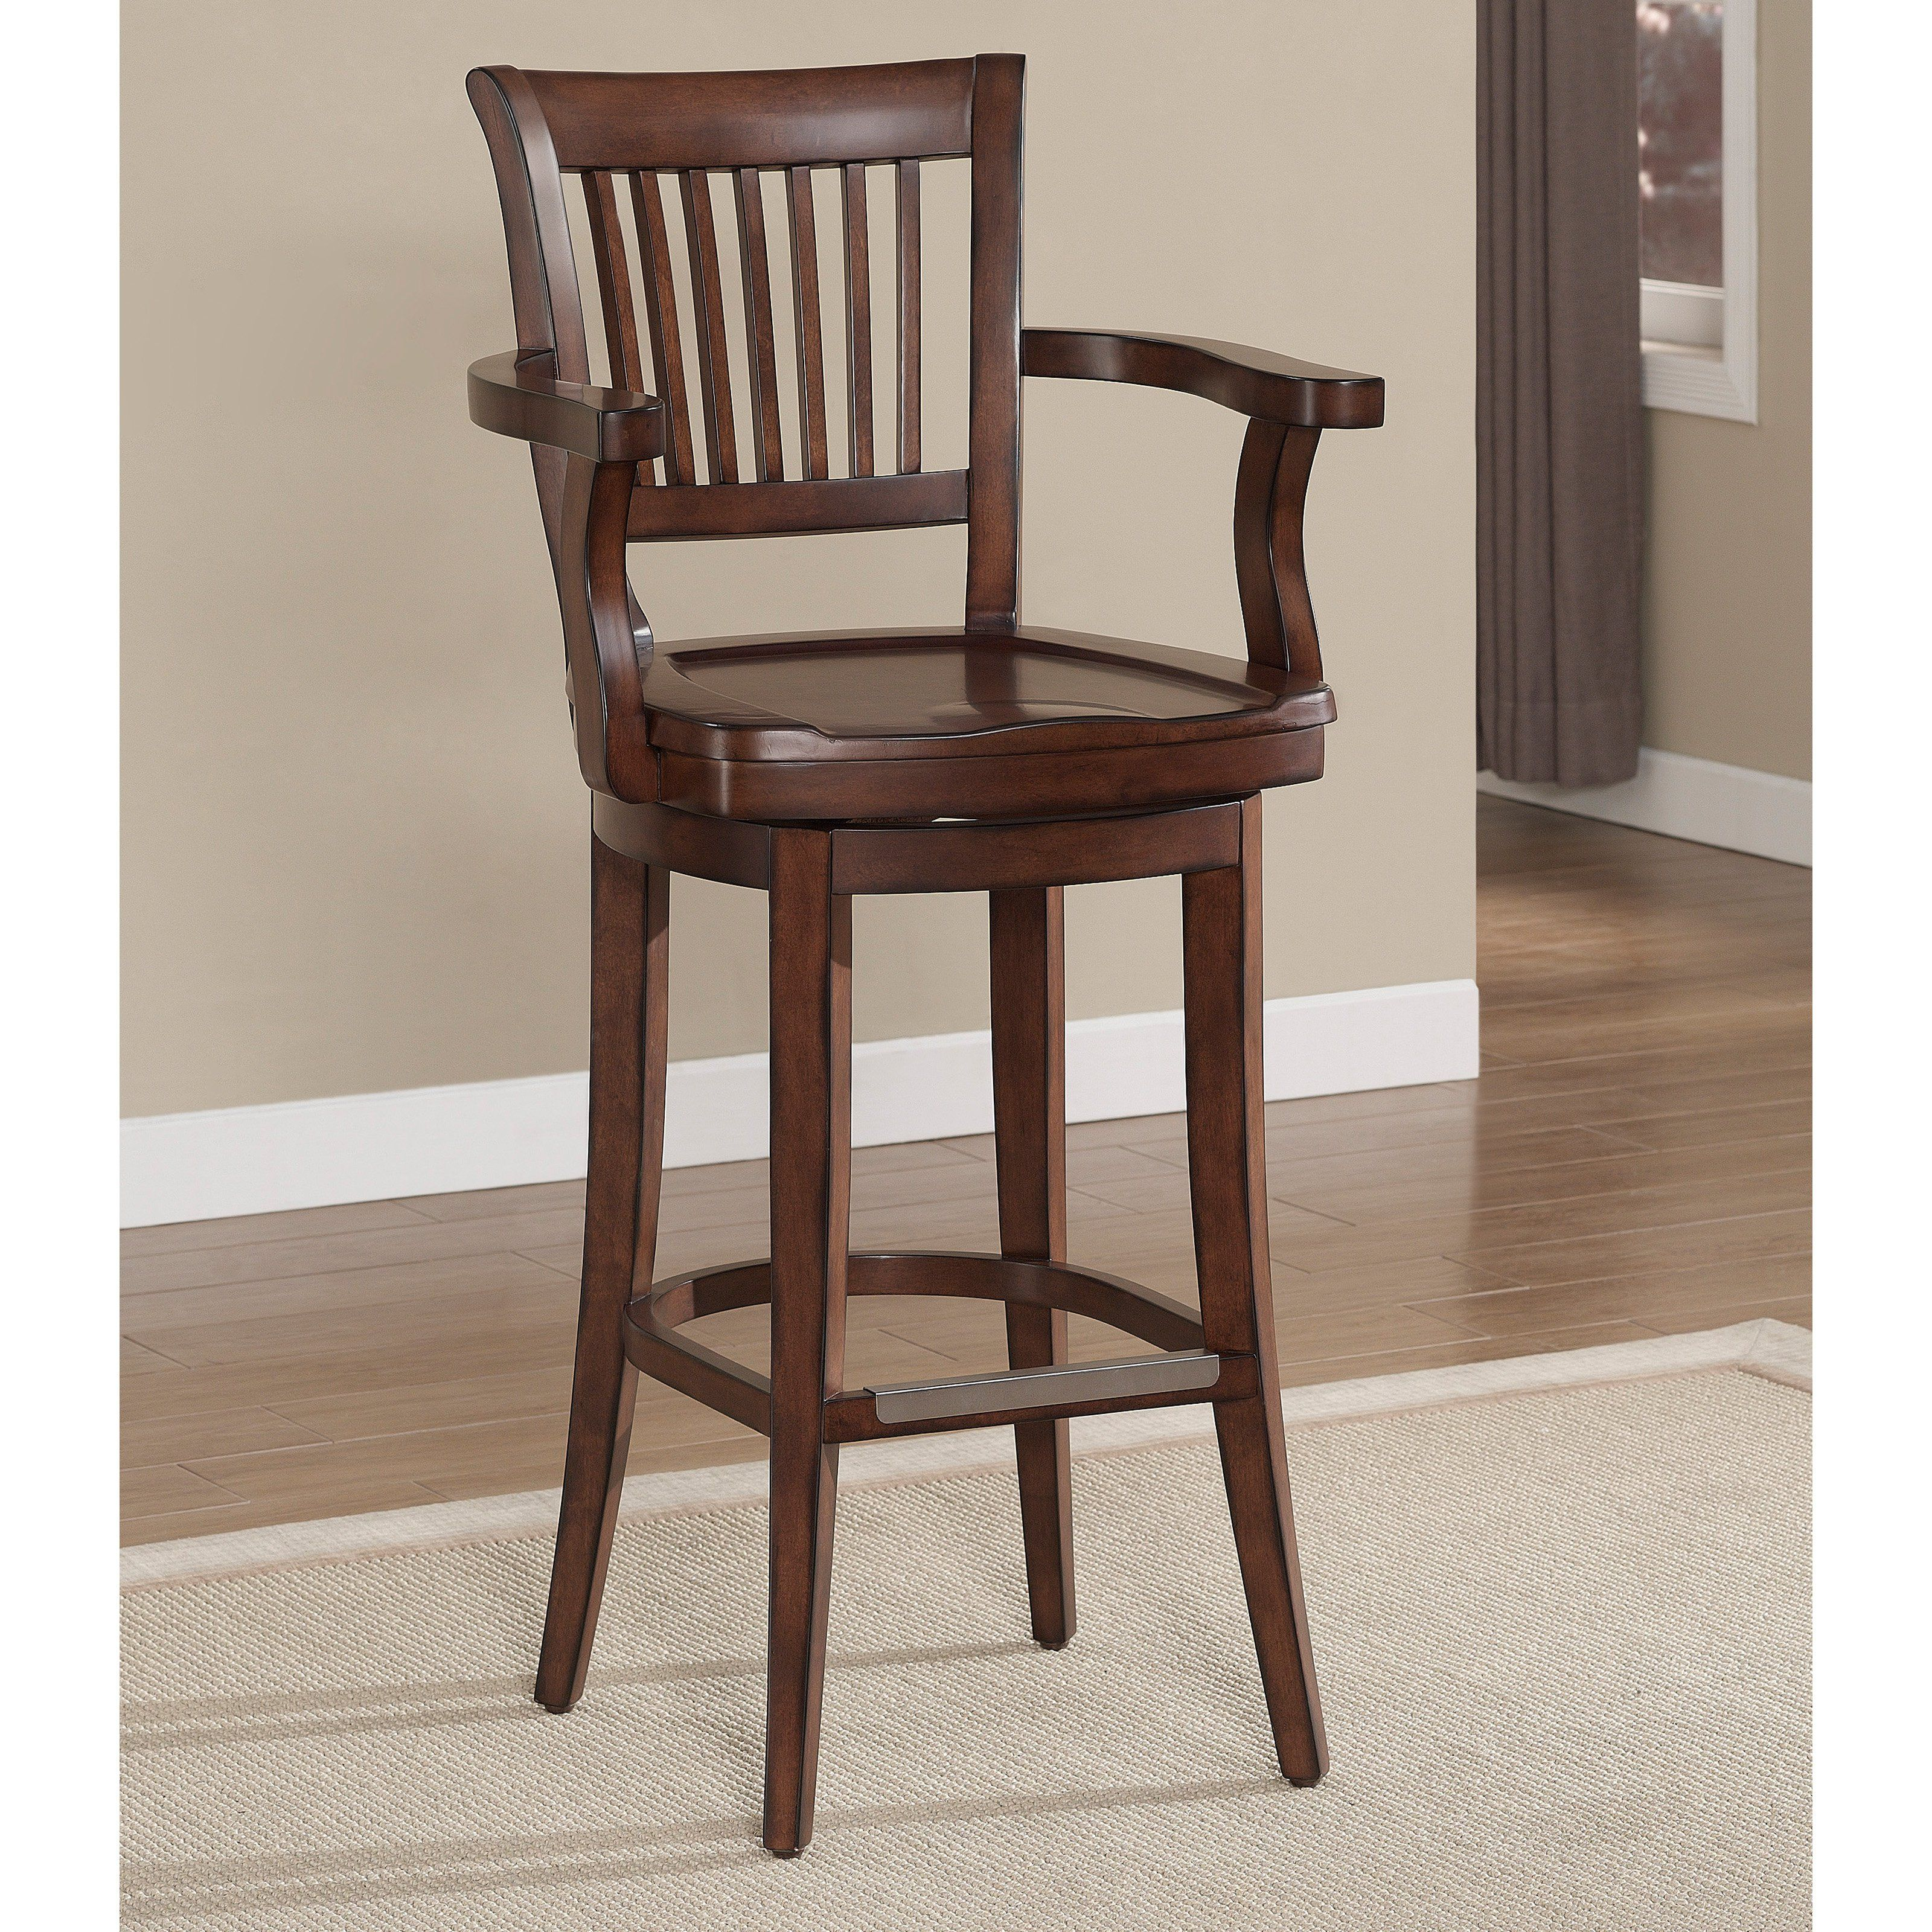 Charmant AHB Molena Extra Tall Bar Stool   $399.95 @hayneedle